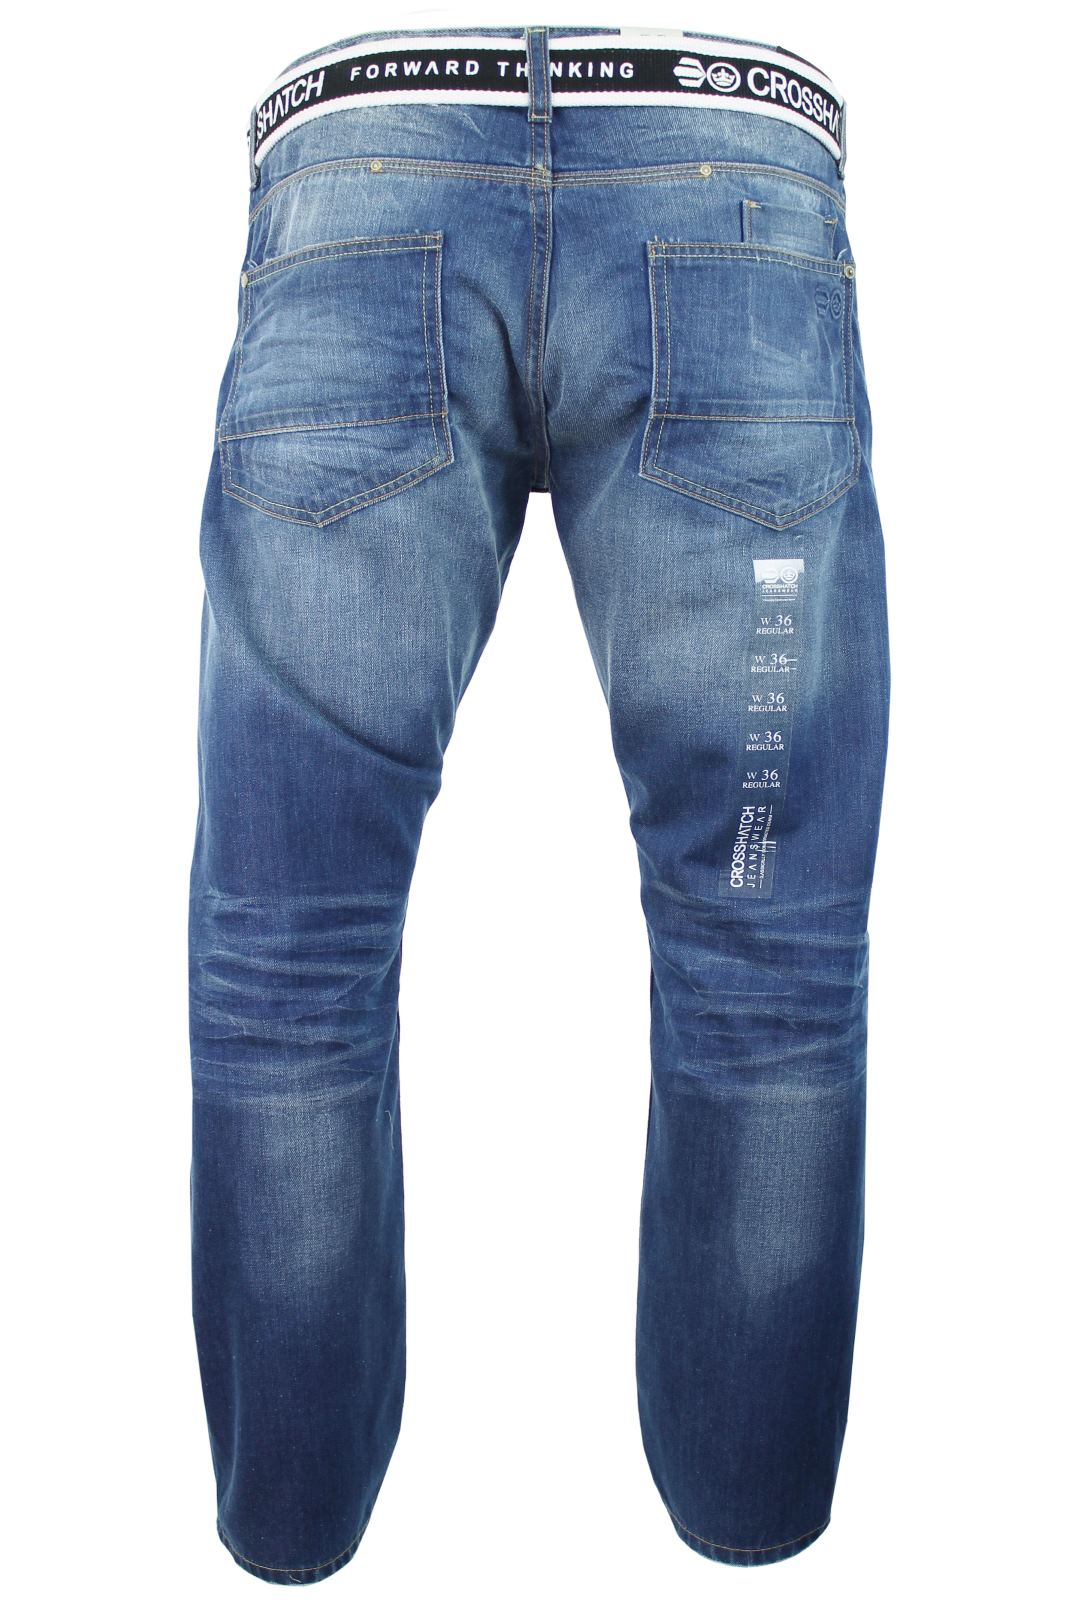 Mens Crosshatch 'Winchester' Jeans Raw Stone Washed Denim Button Fly-2